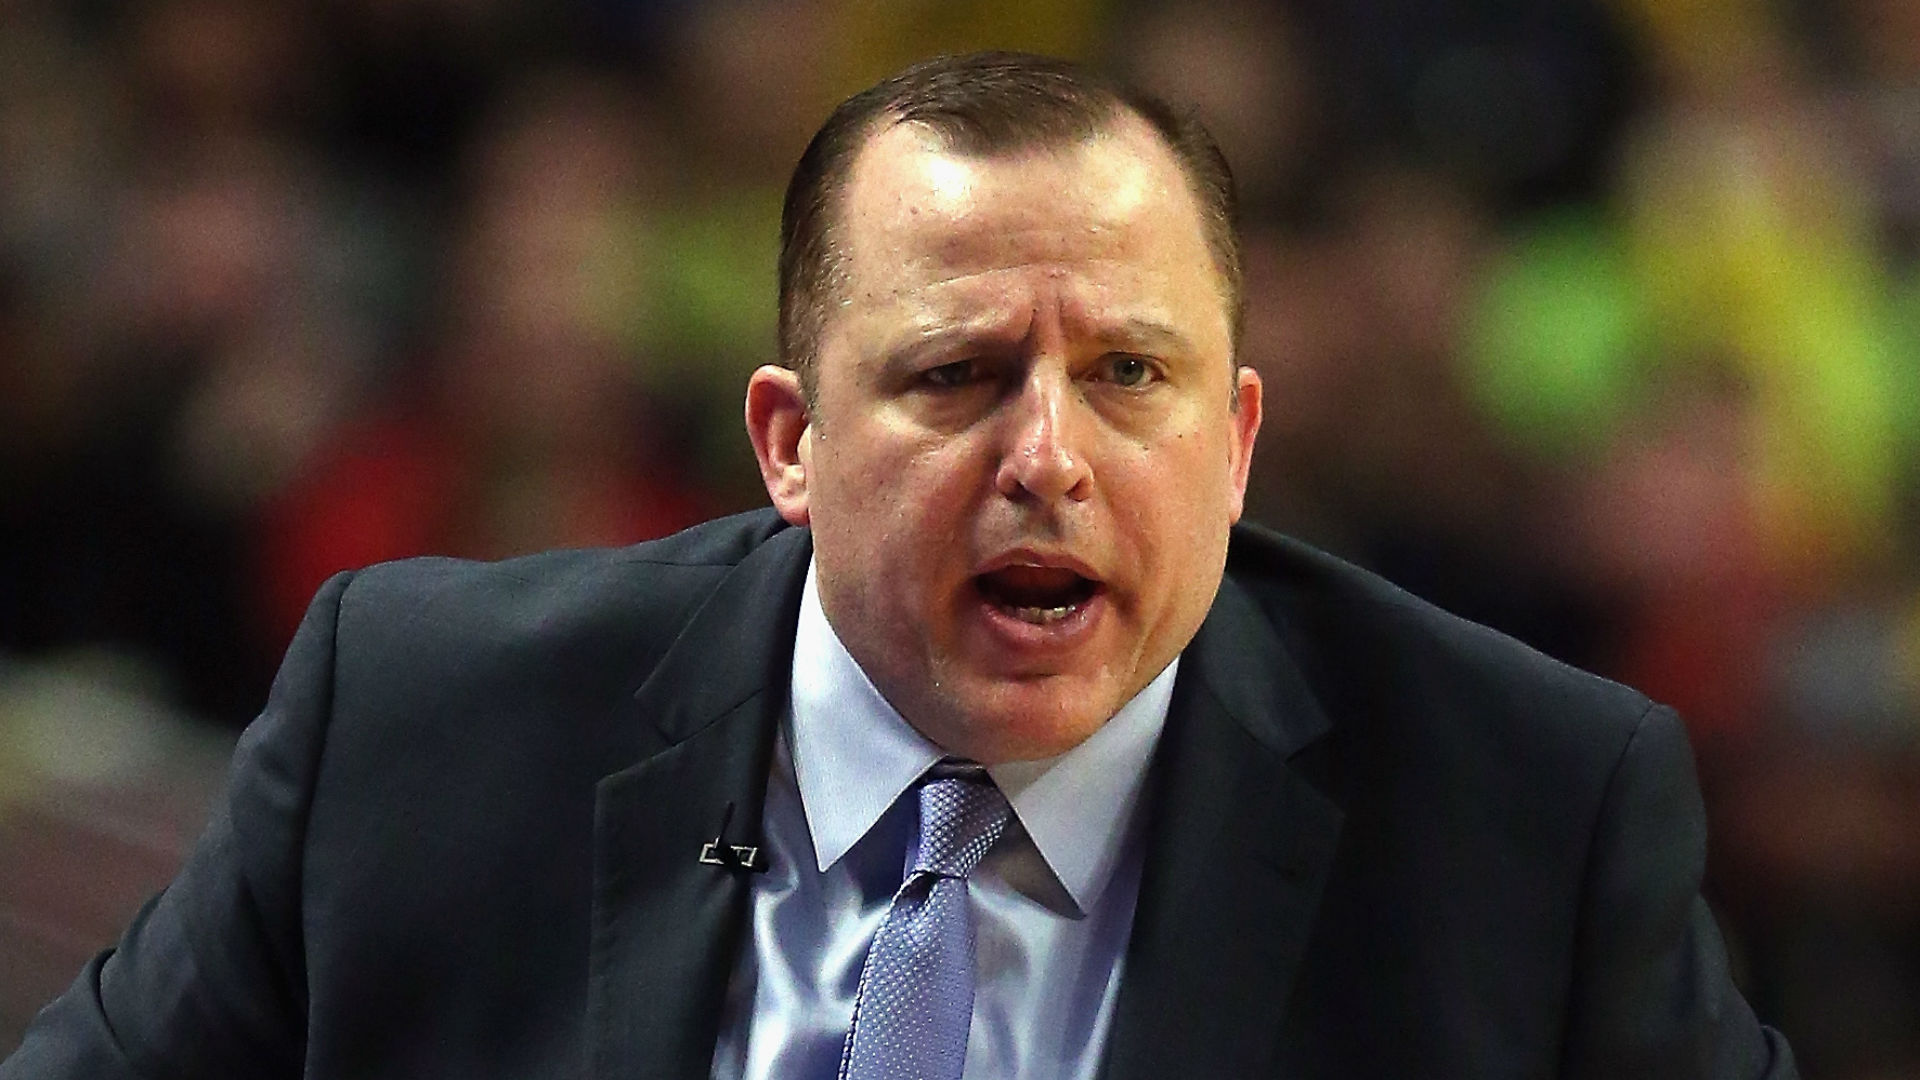 Bulls players reportedly ripped Tom Thibodeau in exit interview